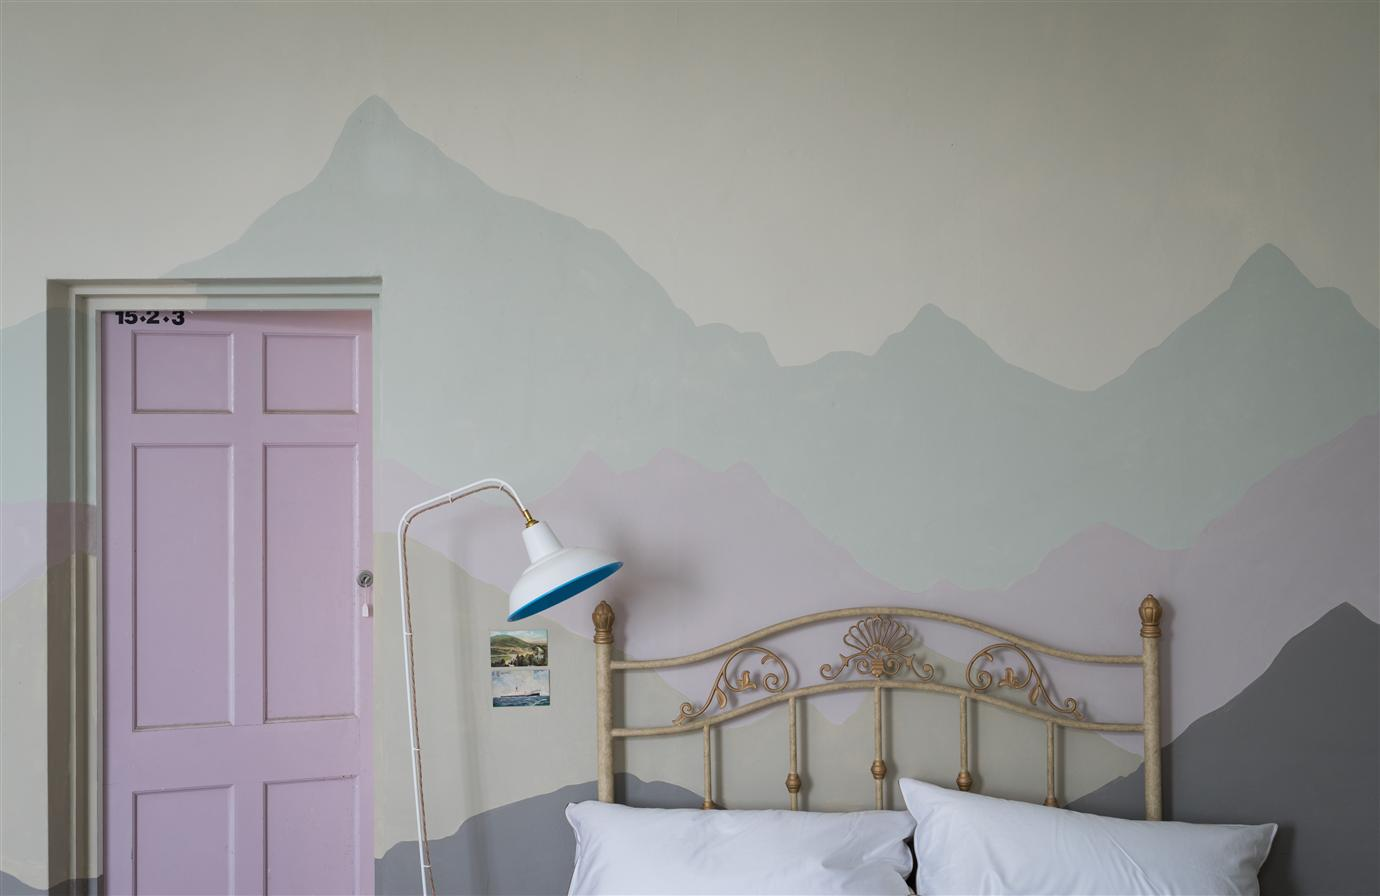 Peignoir Paint Colour In An East Facing Room